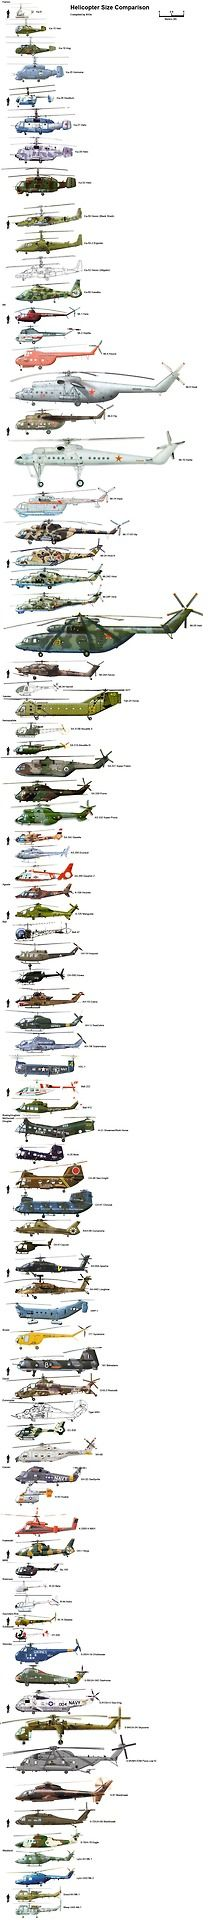 Helicopter size comparison